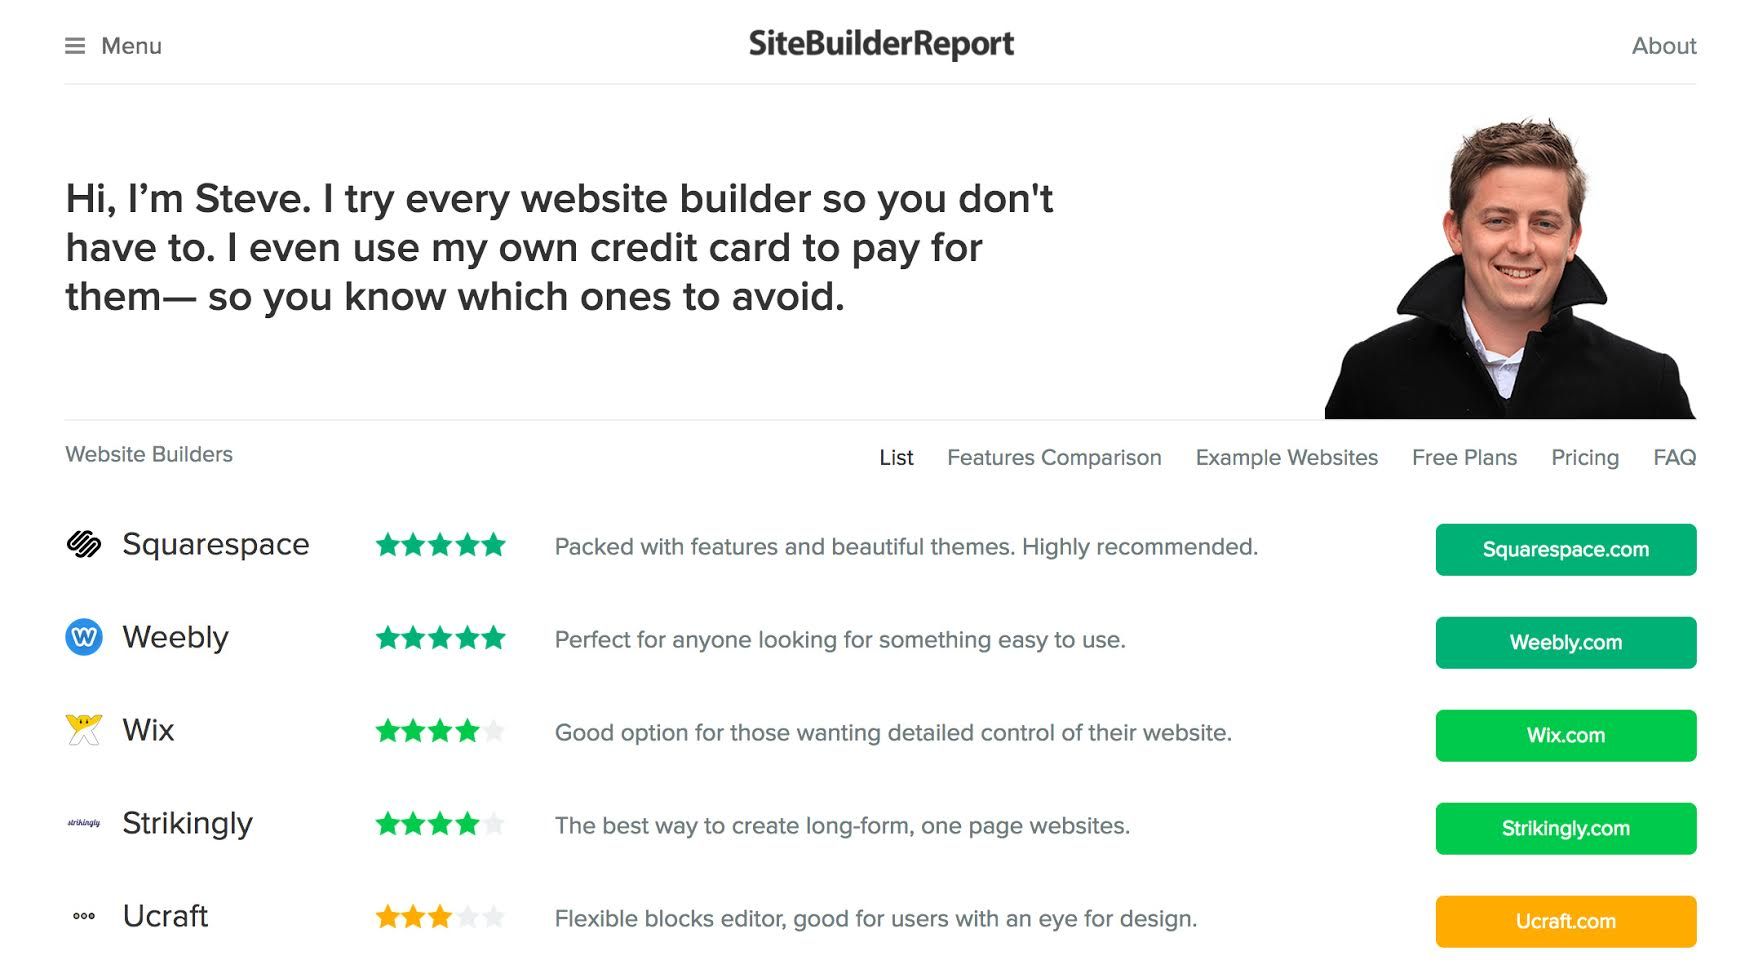 Site Builder Report's Homepage